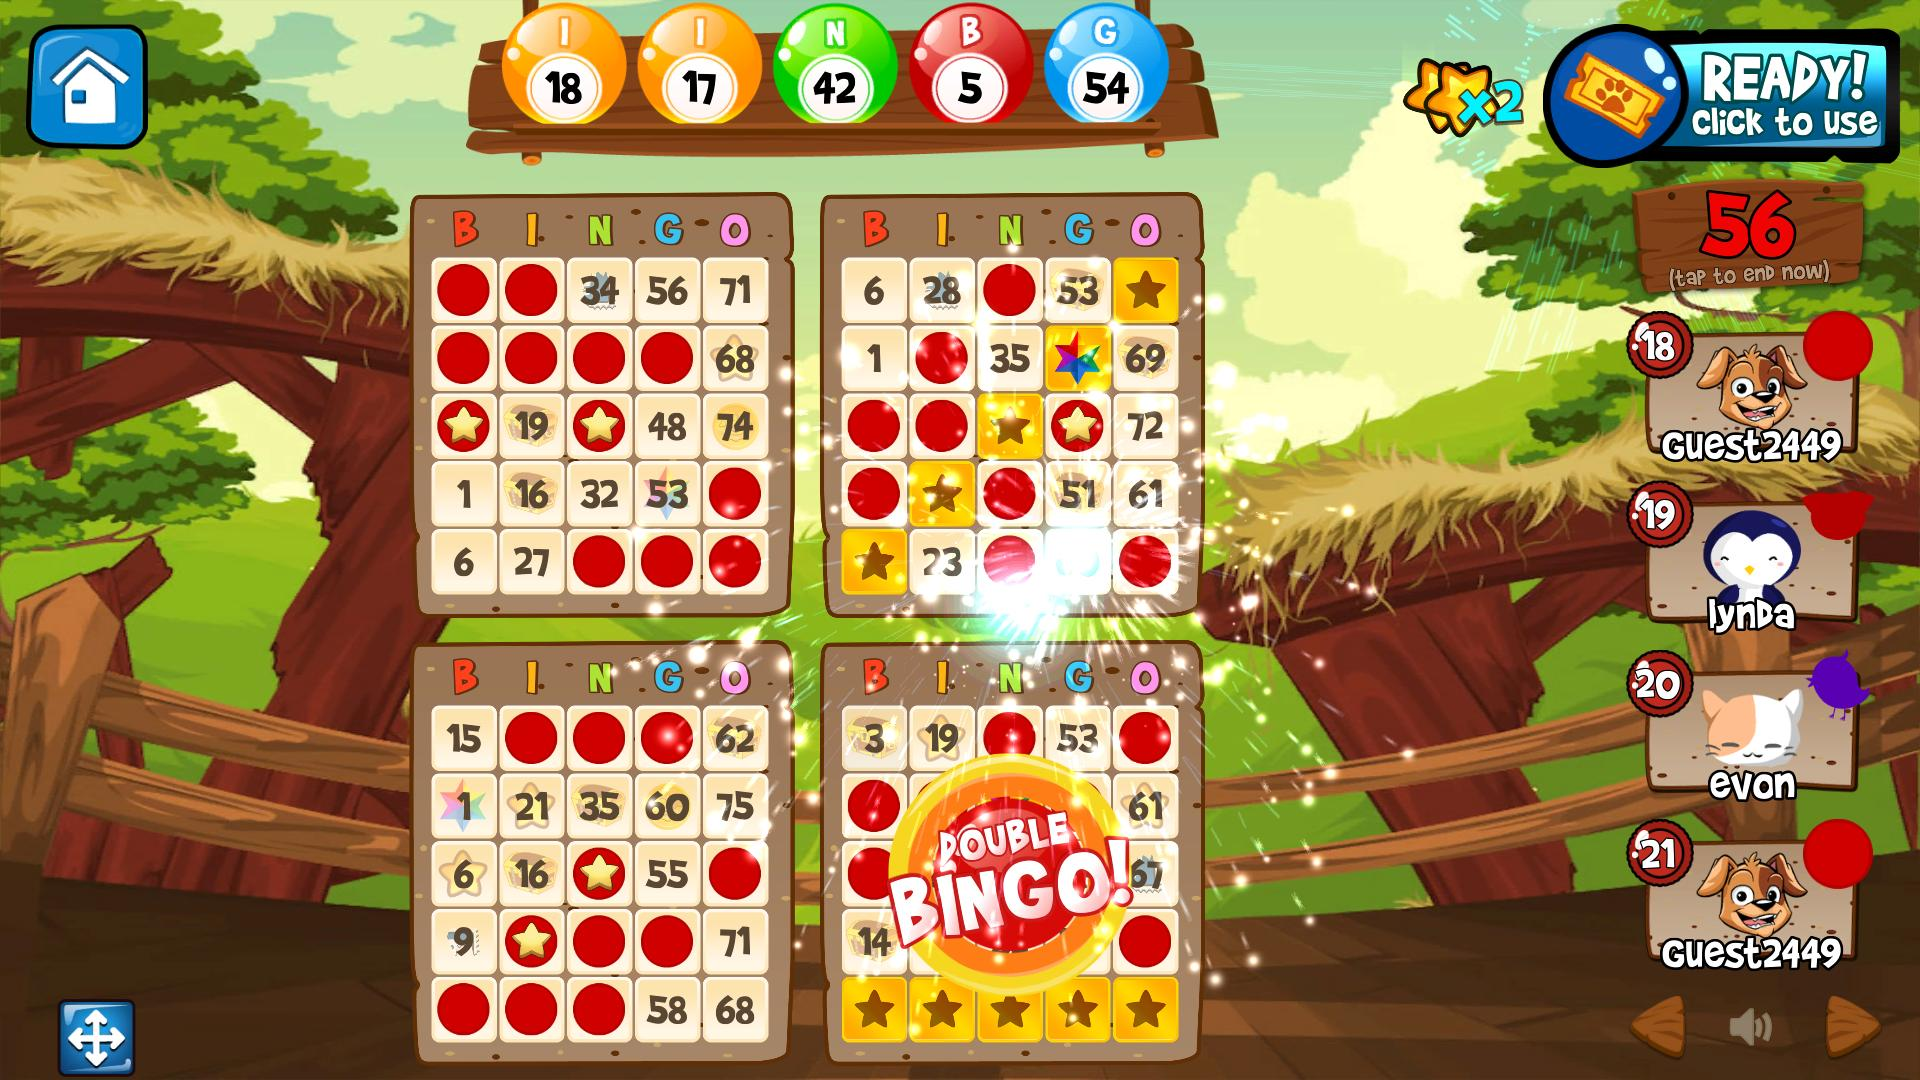 Bingo Abradoodle - Bingo Games Free to Play! 3.0.02 Screenshot 16